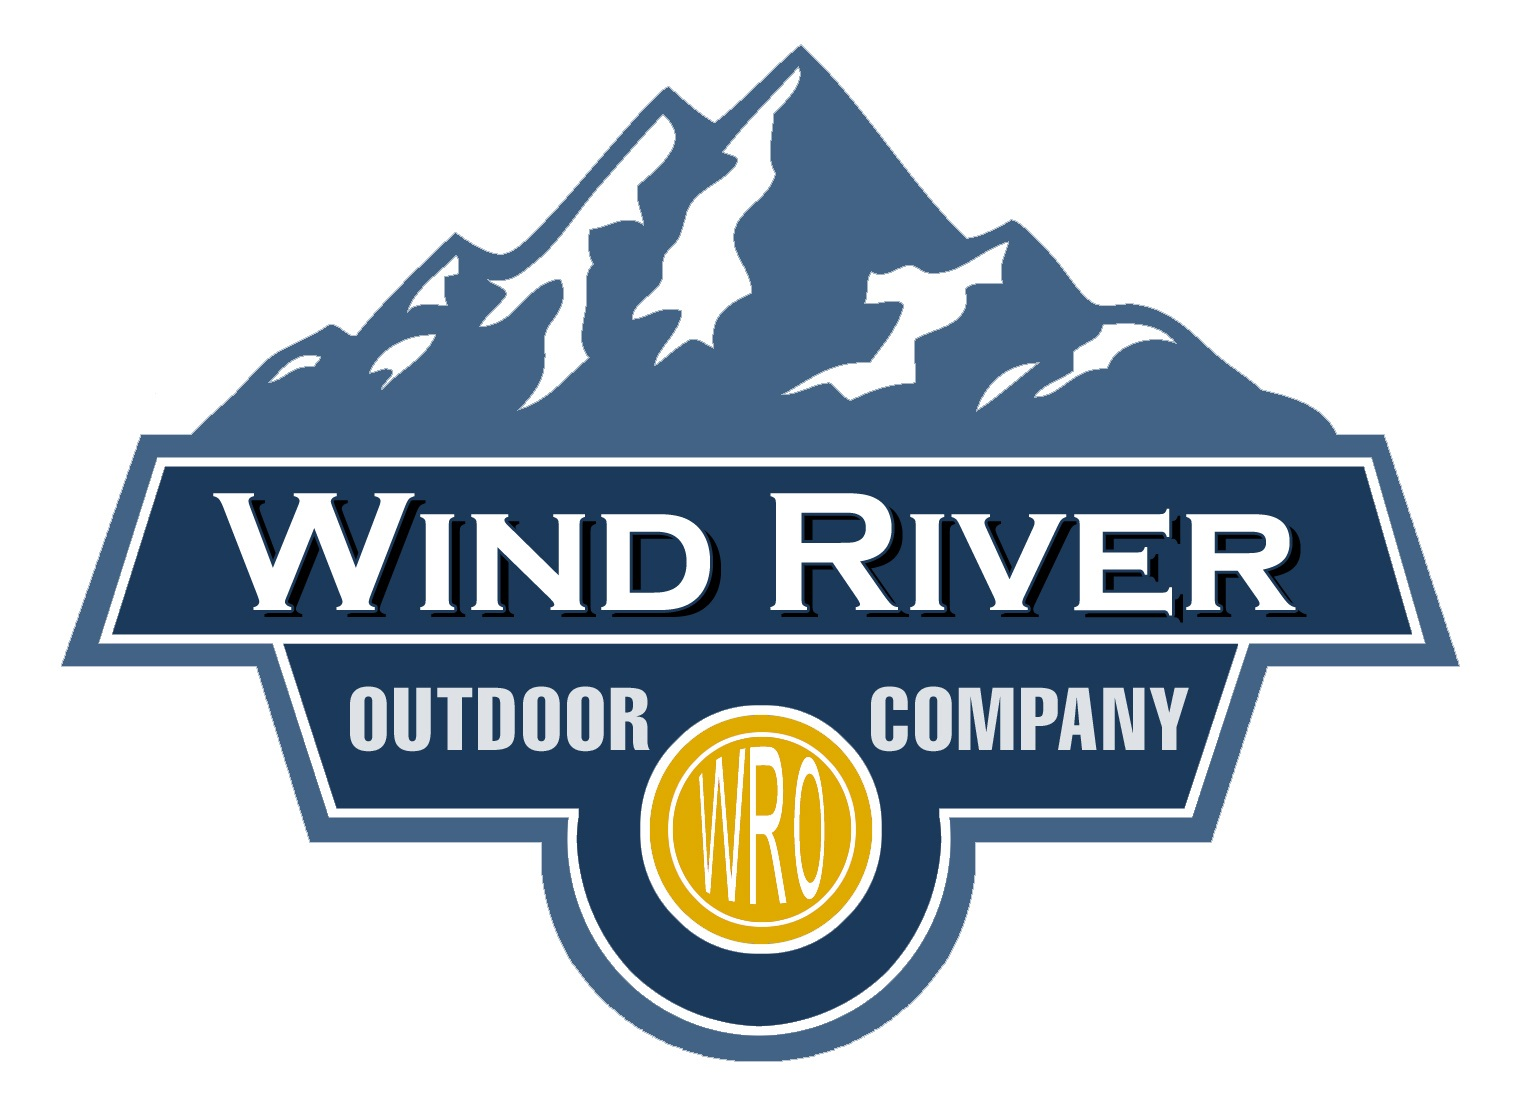 - WIND RIVER OUTDOOR COMPANY: At Wind River Outdoor Company you'll find a team of avid outdoor enthusiasts who love to hike, explore, fish, hunt, climb and backpack in the wilds of Wyoming. WROC's mission is to provide the best outdoor equipment at the best value to the customer, while also providing the best possible customer service and expertise. Stop in and browse a great selection of gear and apparel for the adventuring spirit, in person or online. WROC on!